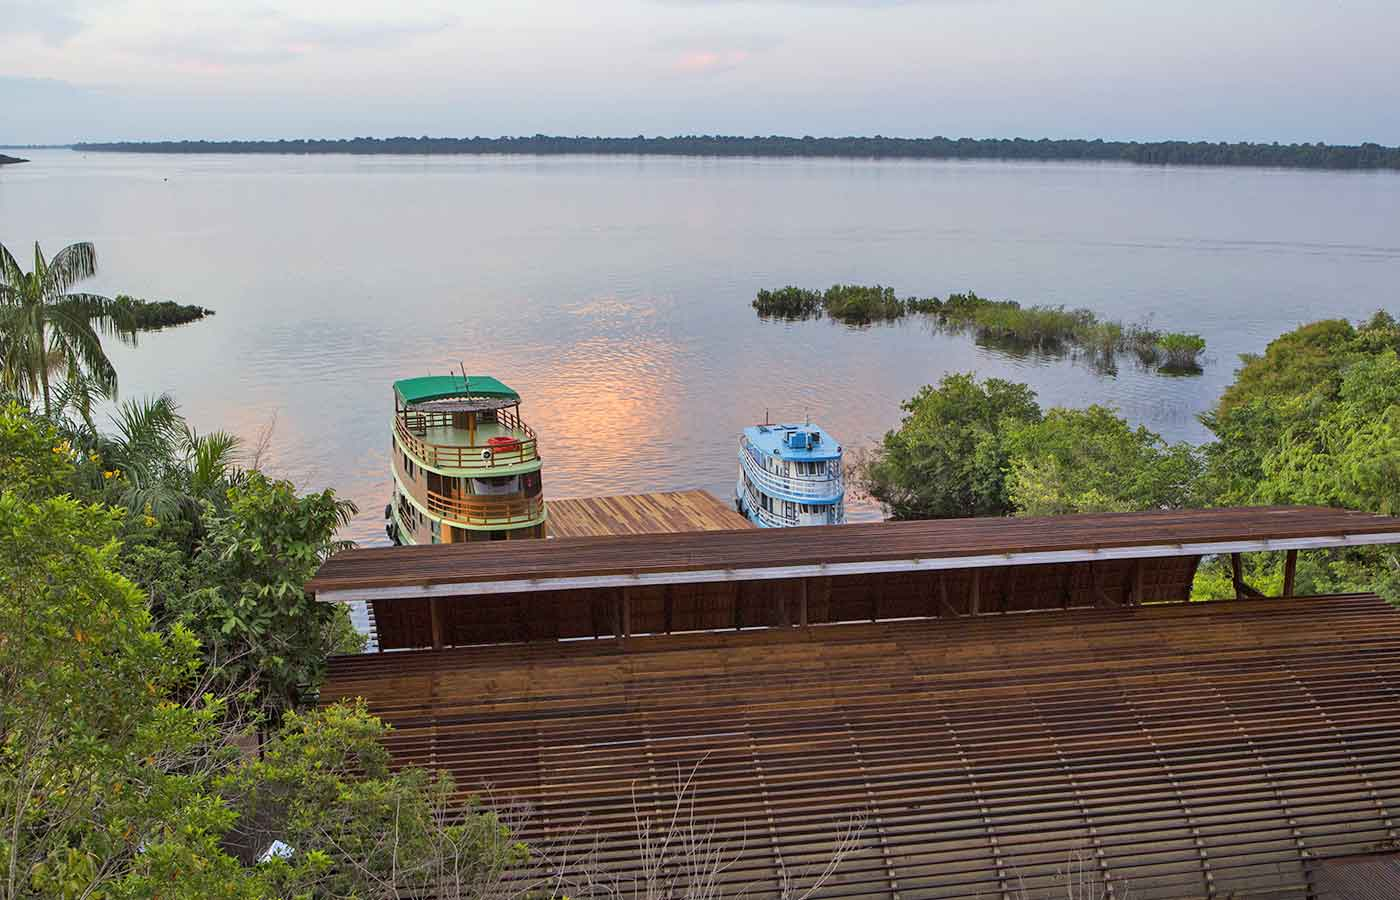 A dusk view of Negro river with regional boats from Mirante-do-Gaviao in Amazonas, Brazil